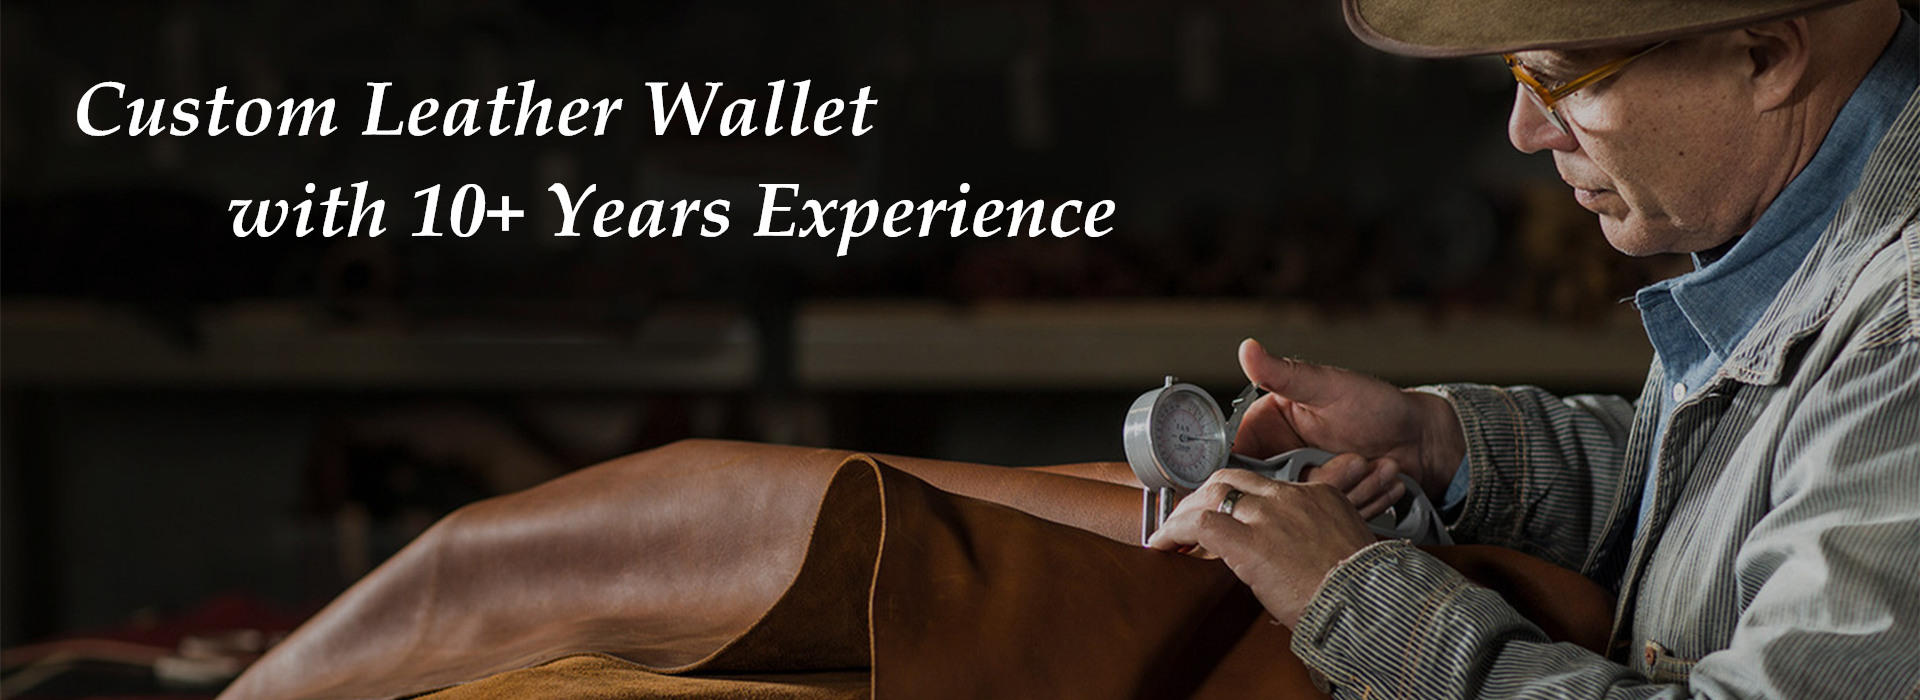 Custom Leather Wallet Manufacturer, Leather Wallet factory